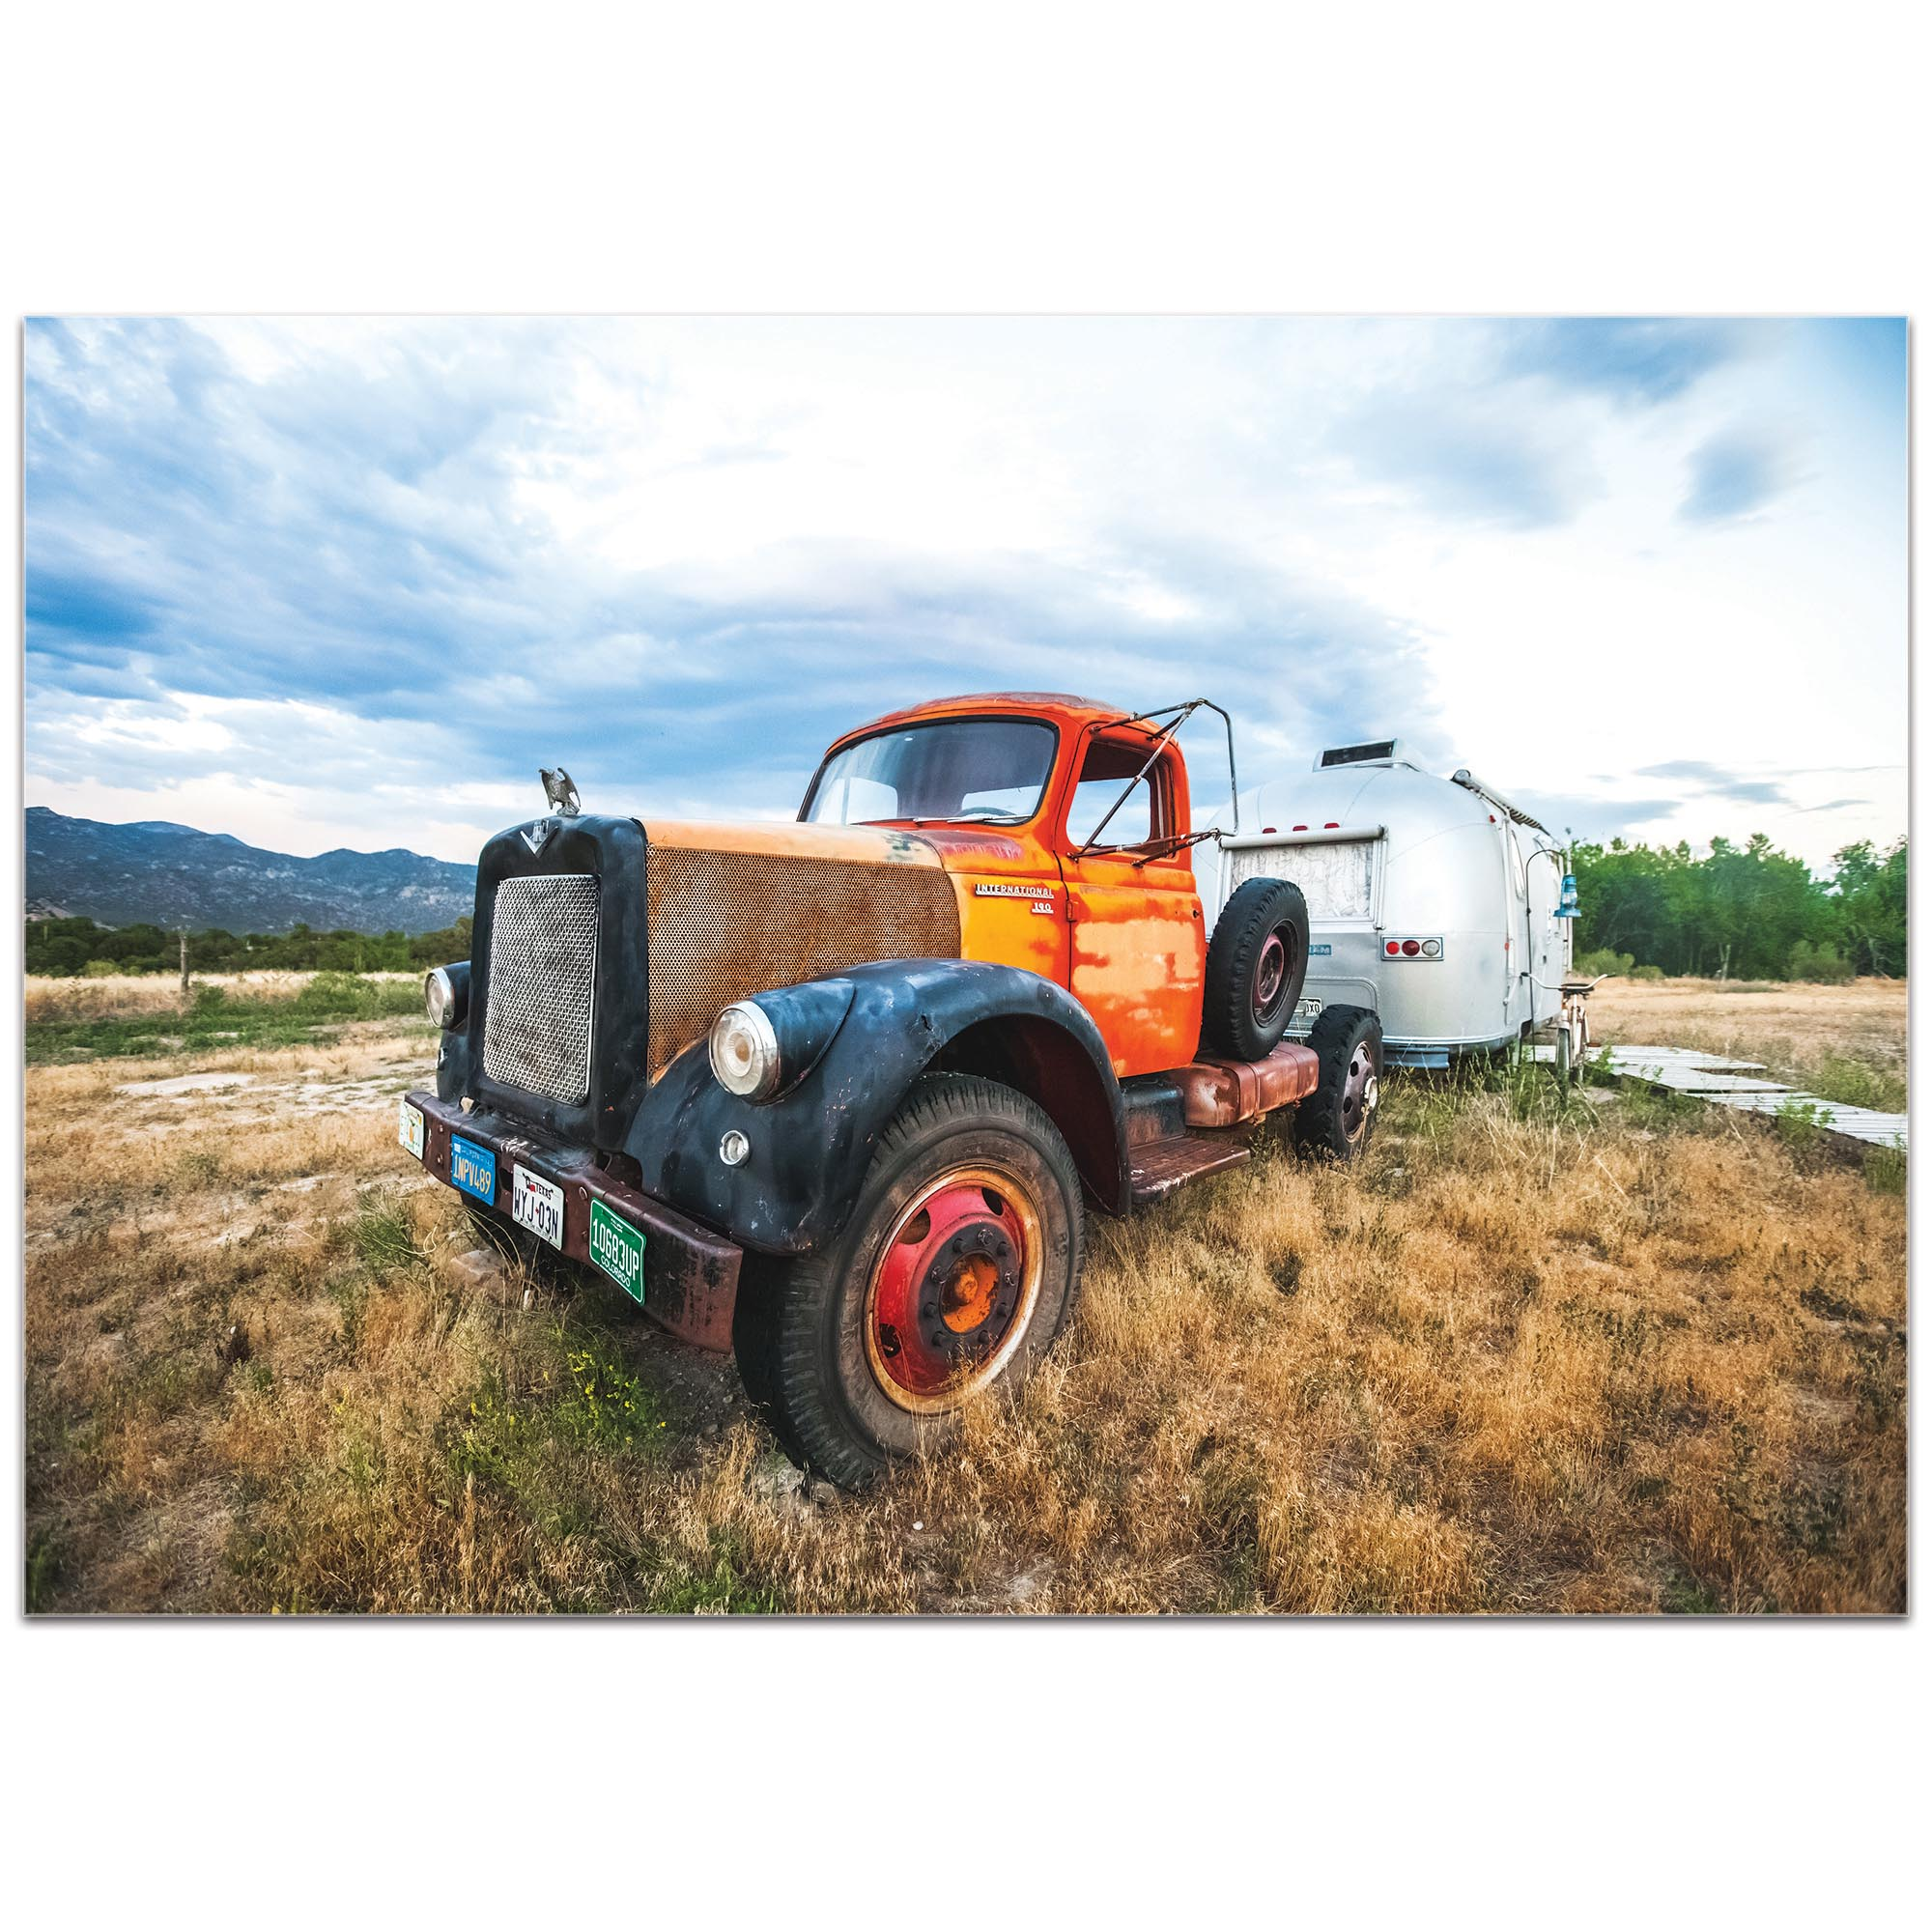 Americana Wall Art 'The Workhorse' - Classic Truck Decor on Metal or Plexiglass - Image 2